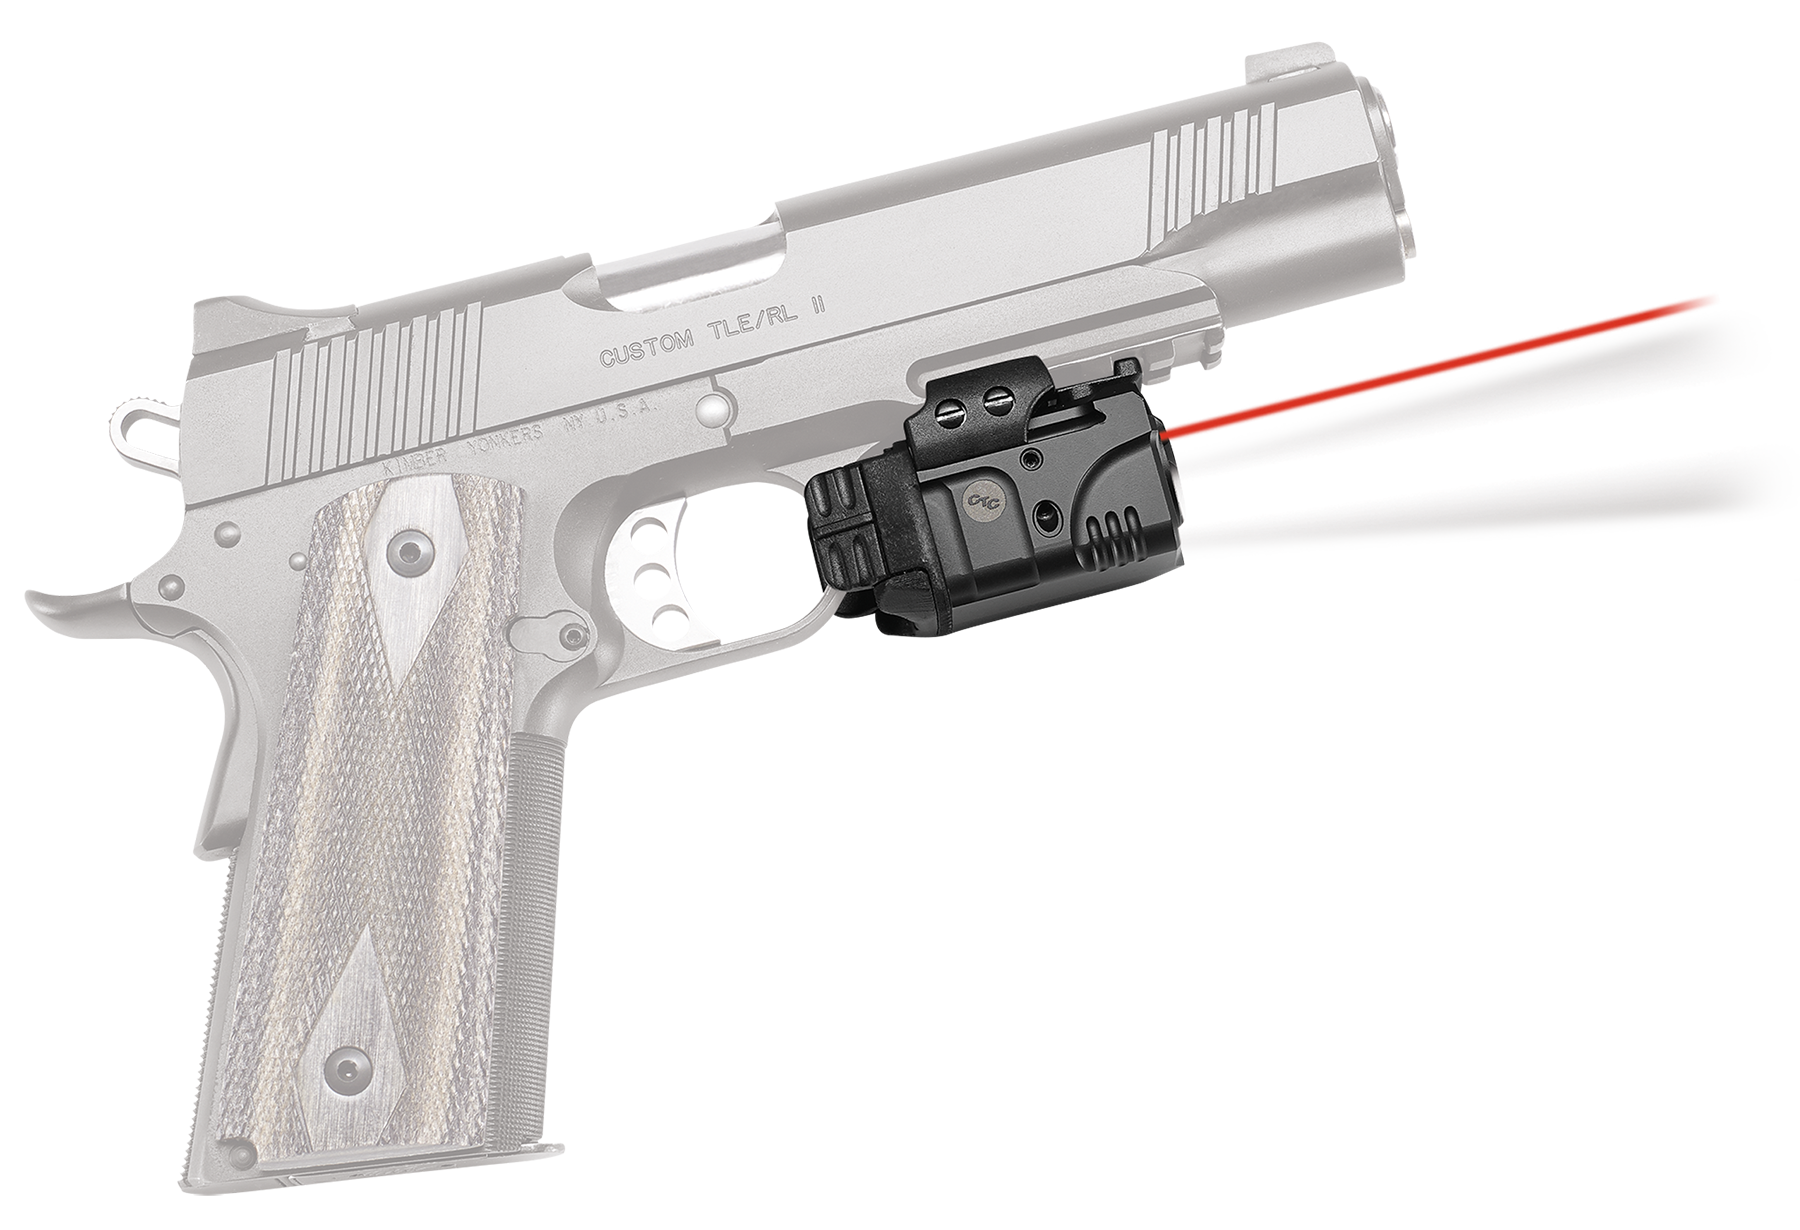 Crimson Trace CMR205 Rail Master Pro Universal Red Laser Sight and Tactical Light w/Picatinny Rail